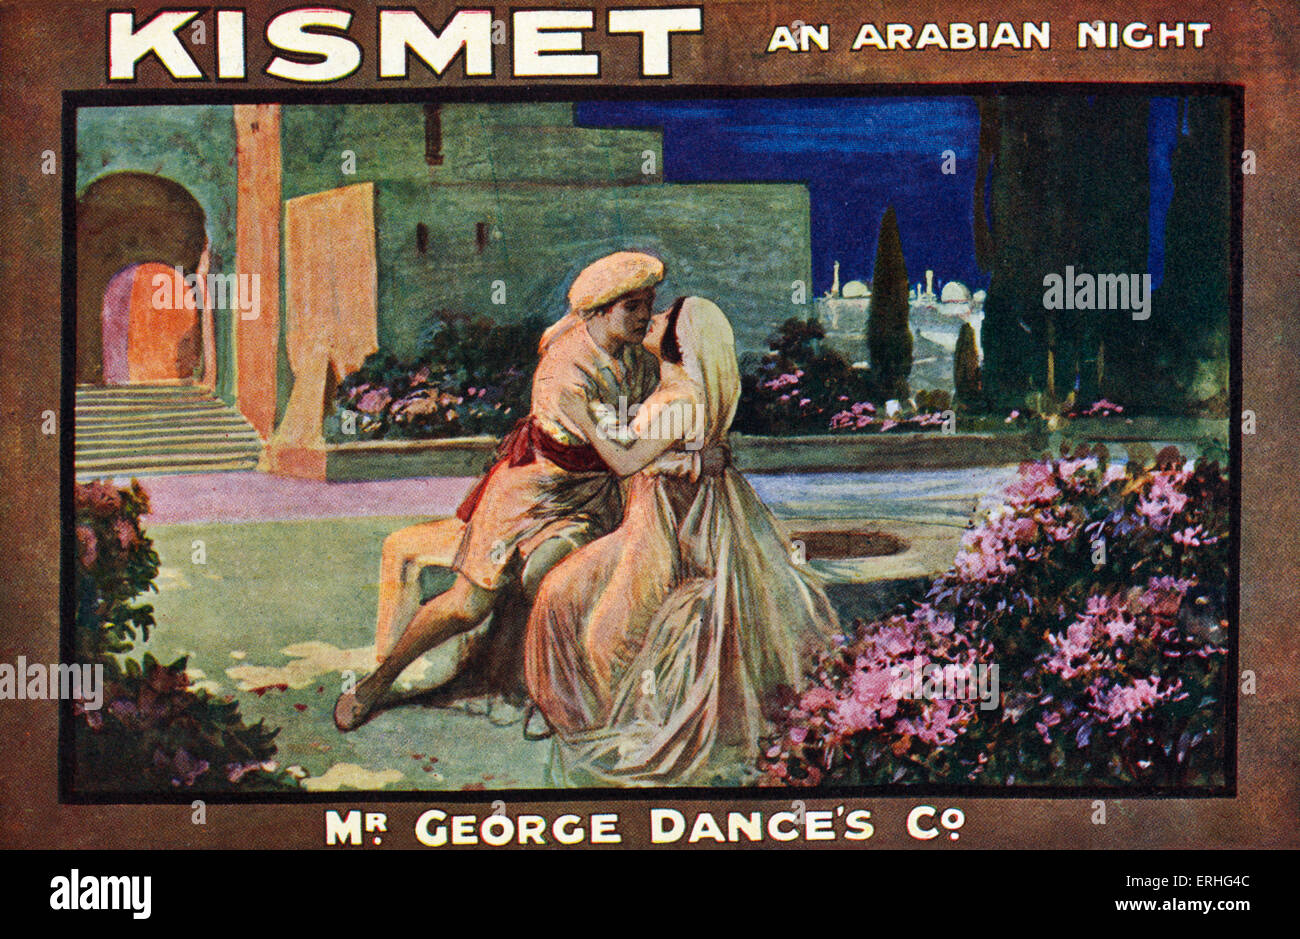 'Kismet - An Arabian Night' - publicity card for the musical by Robert Wright and George Forrest, written - Stock Image